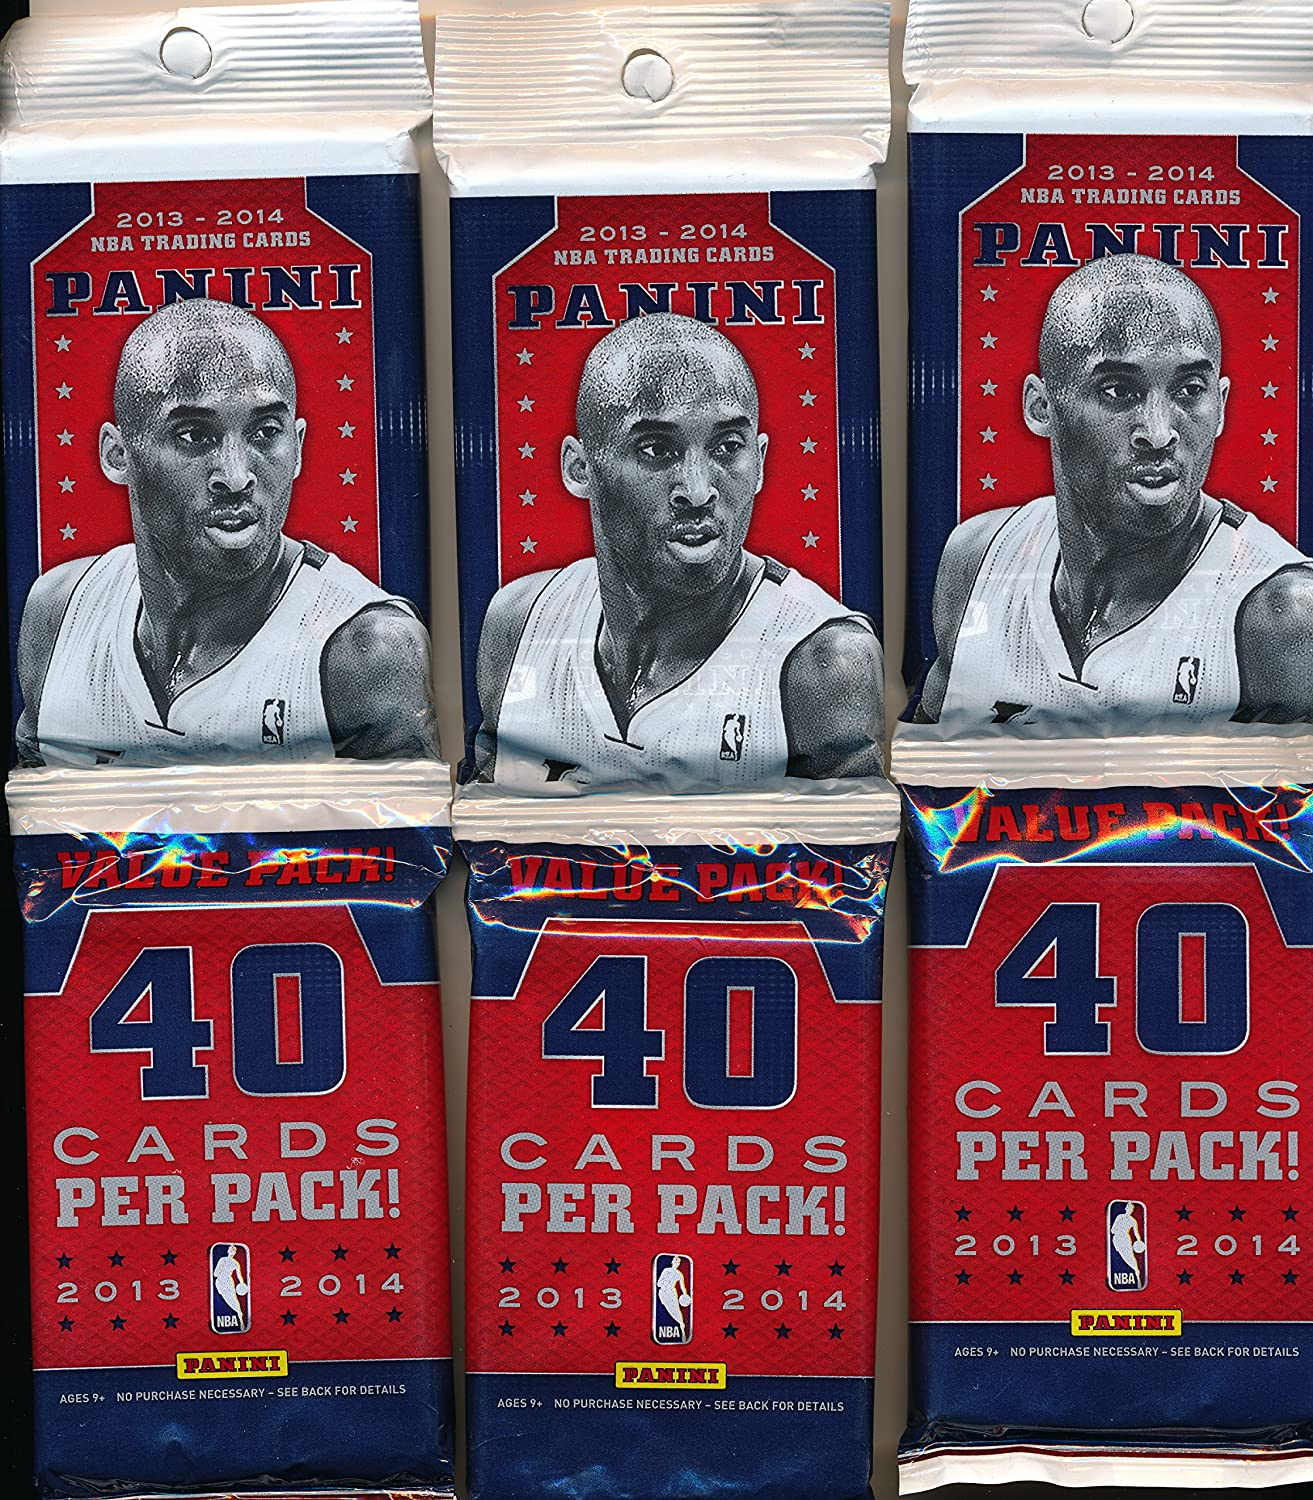 2013-2014 Panini Value Pack lot of 3 packs 40 cards per pack 120 cards total